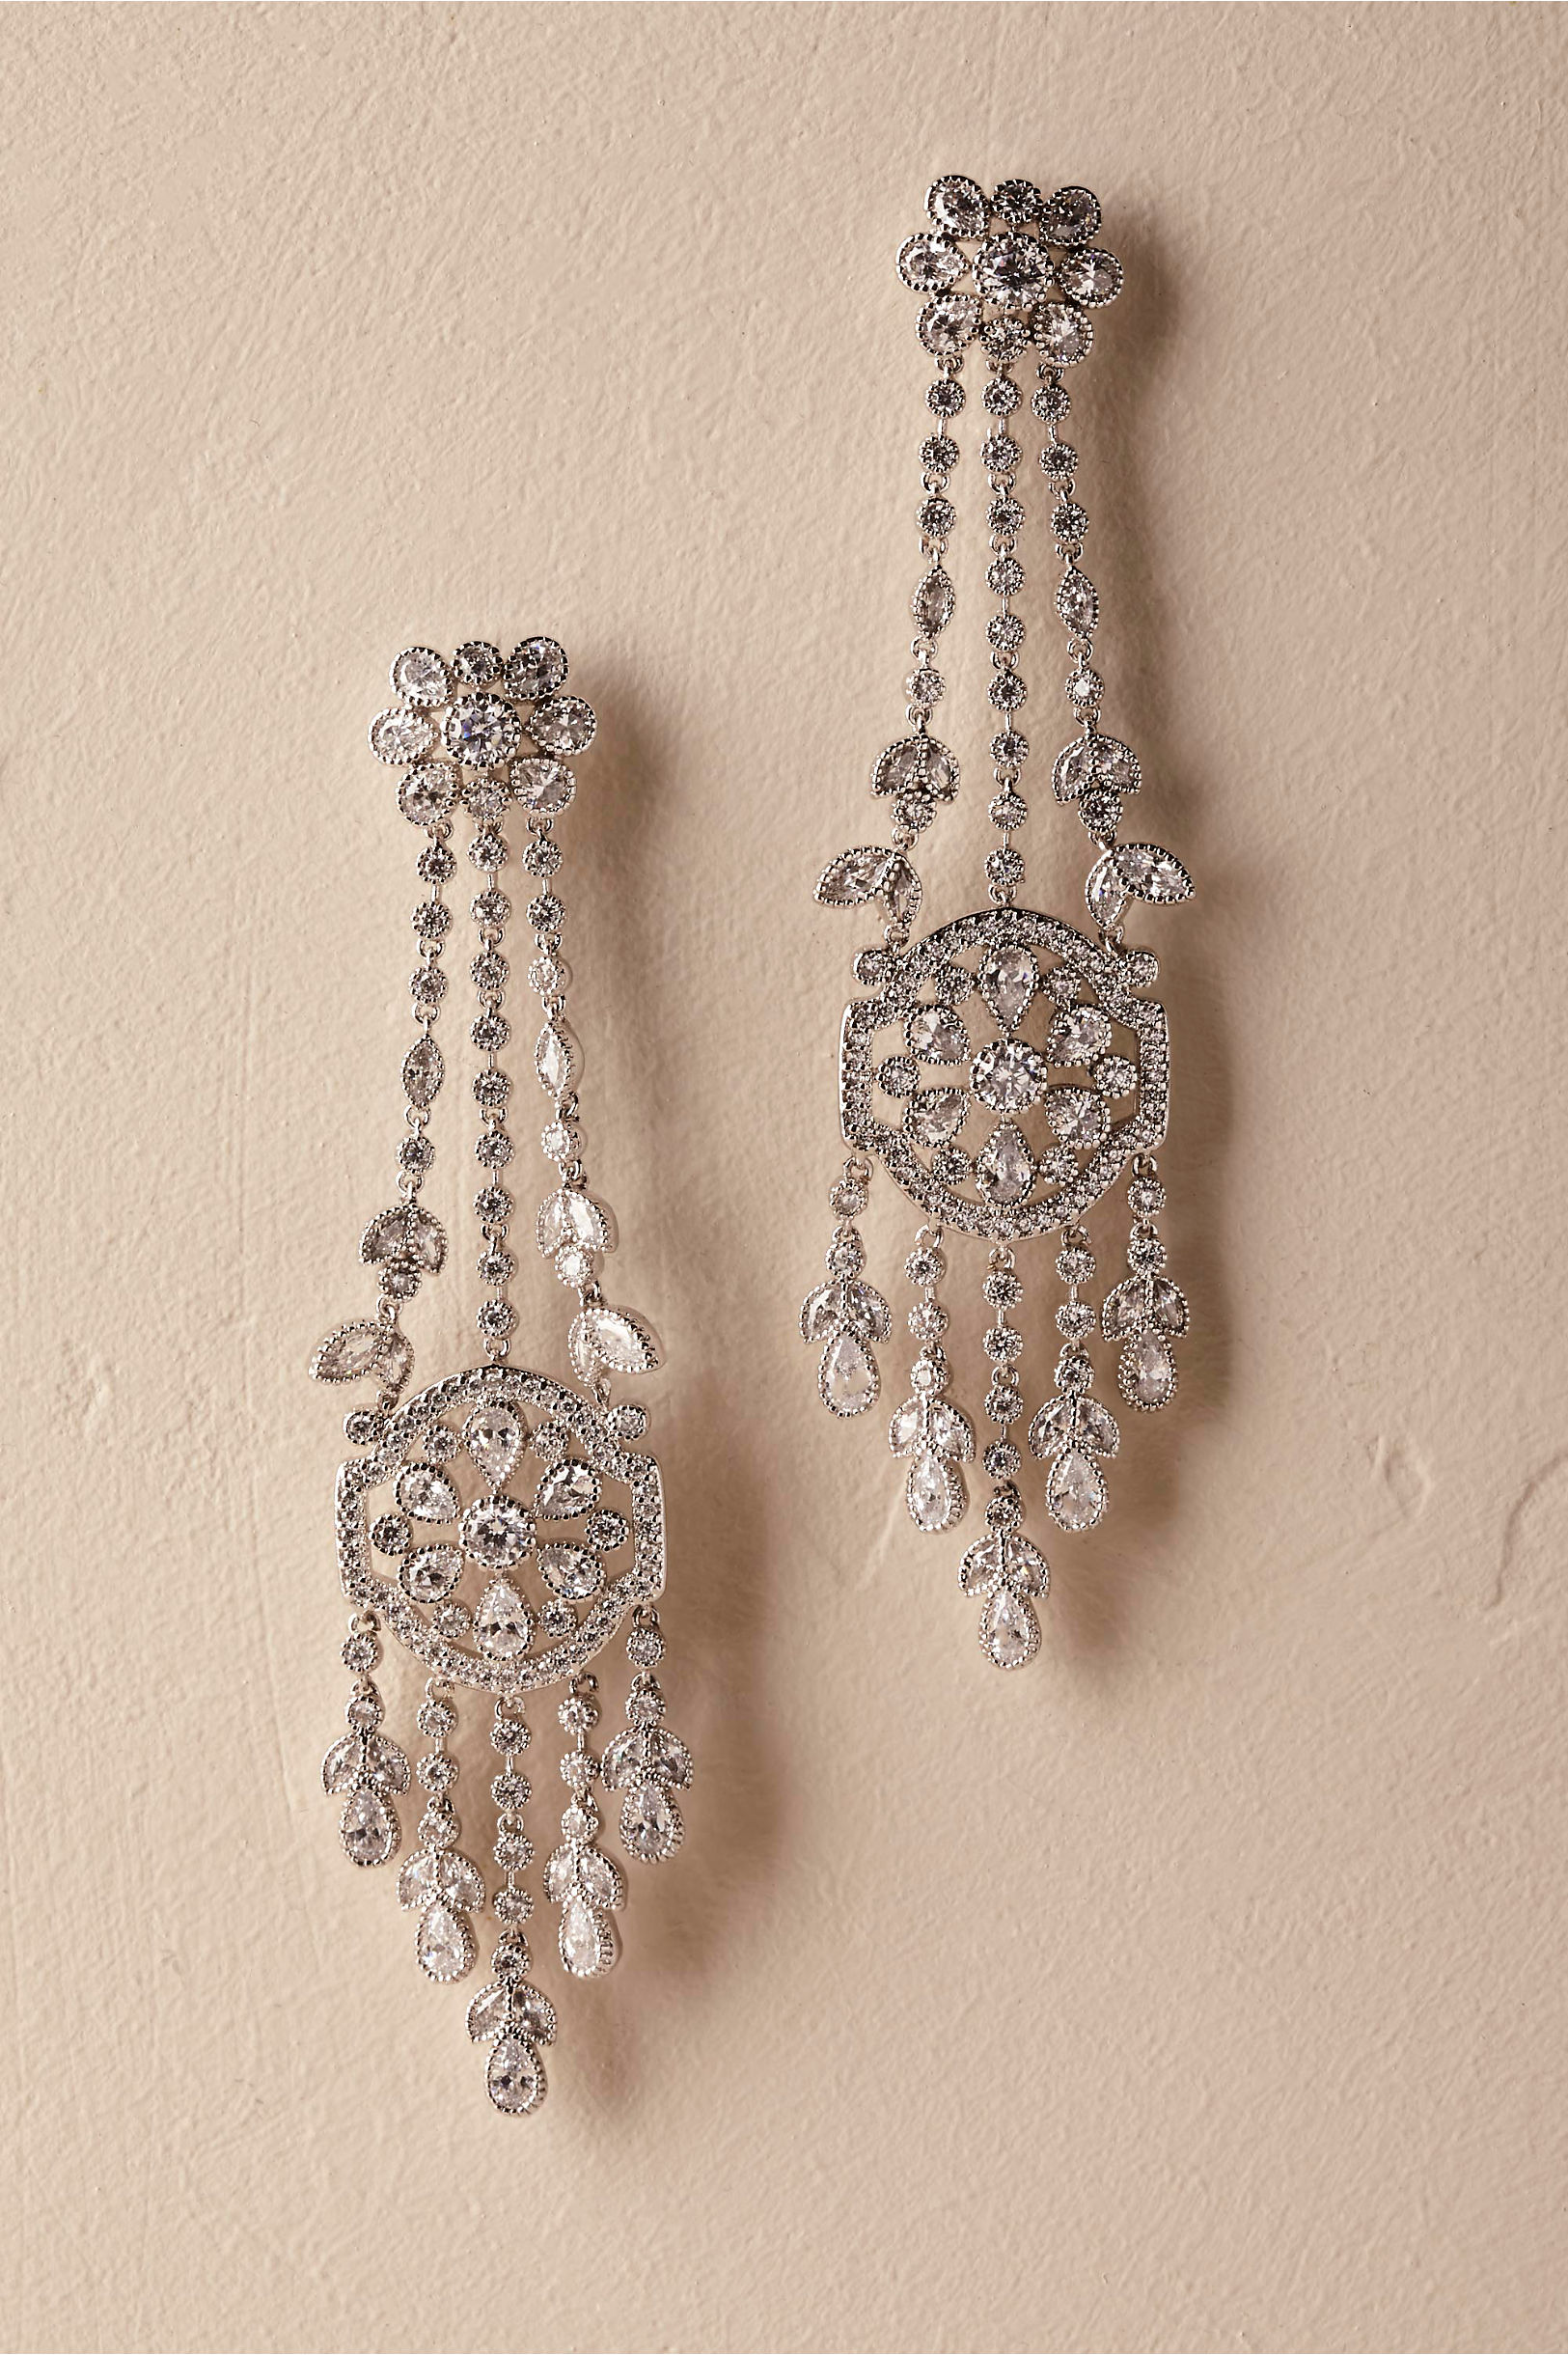 product white beads openwork metal earrings vintage tone jewellery chandelier lucite dangle silver